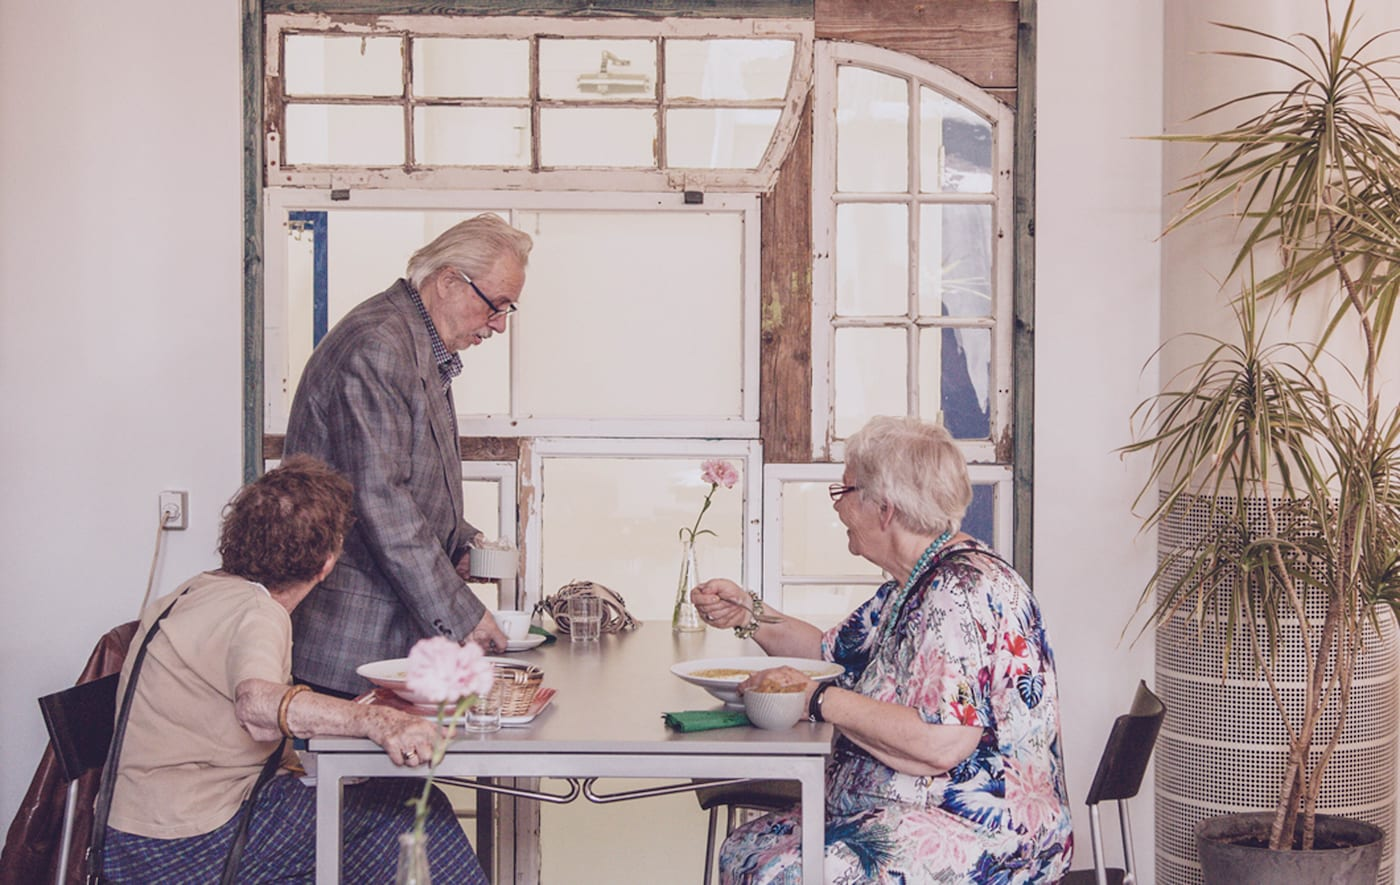 Three older people sit at a table eating a meal together.